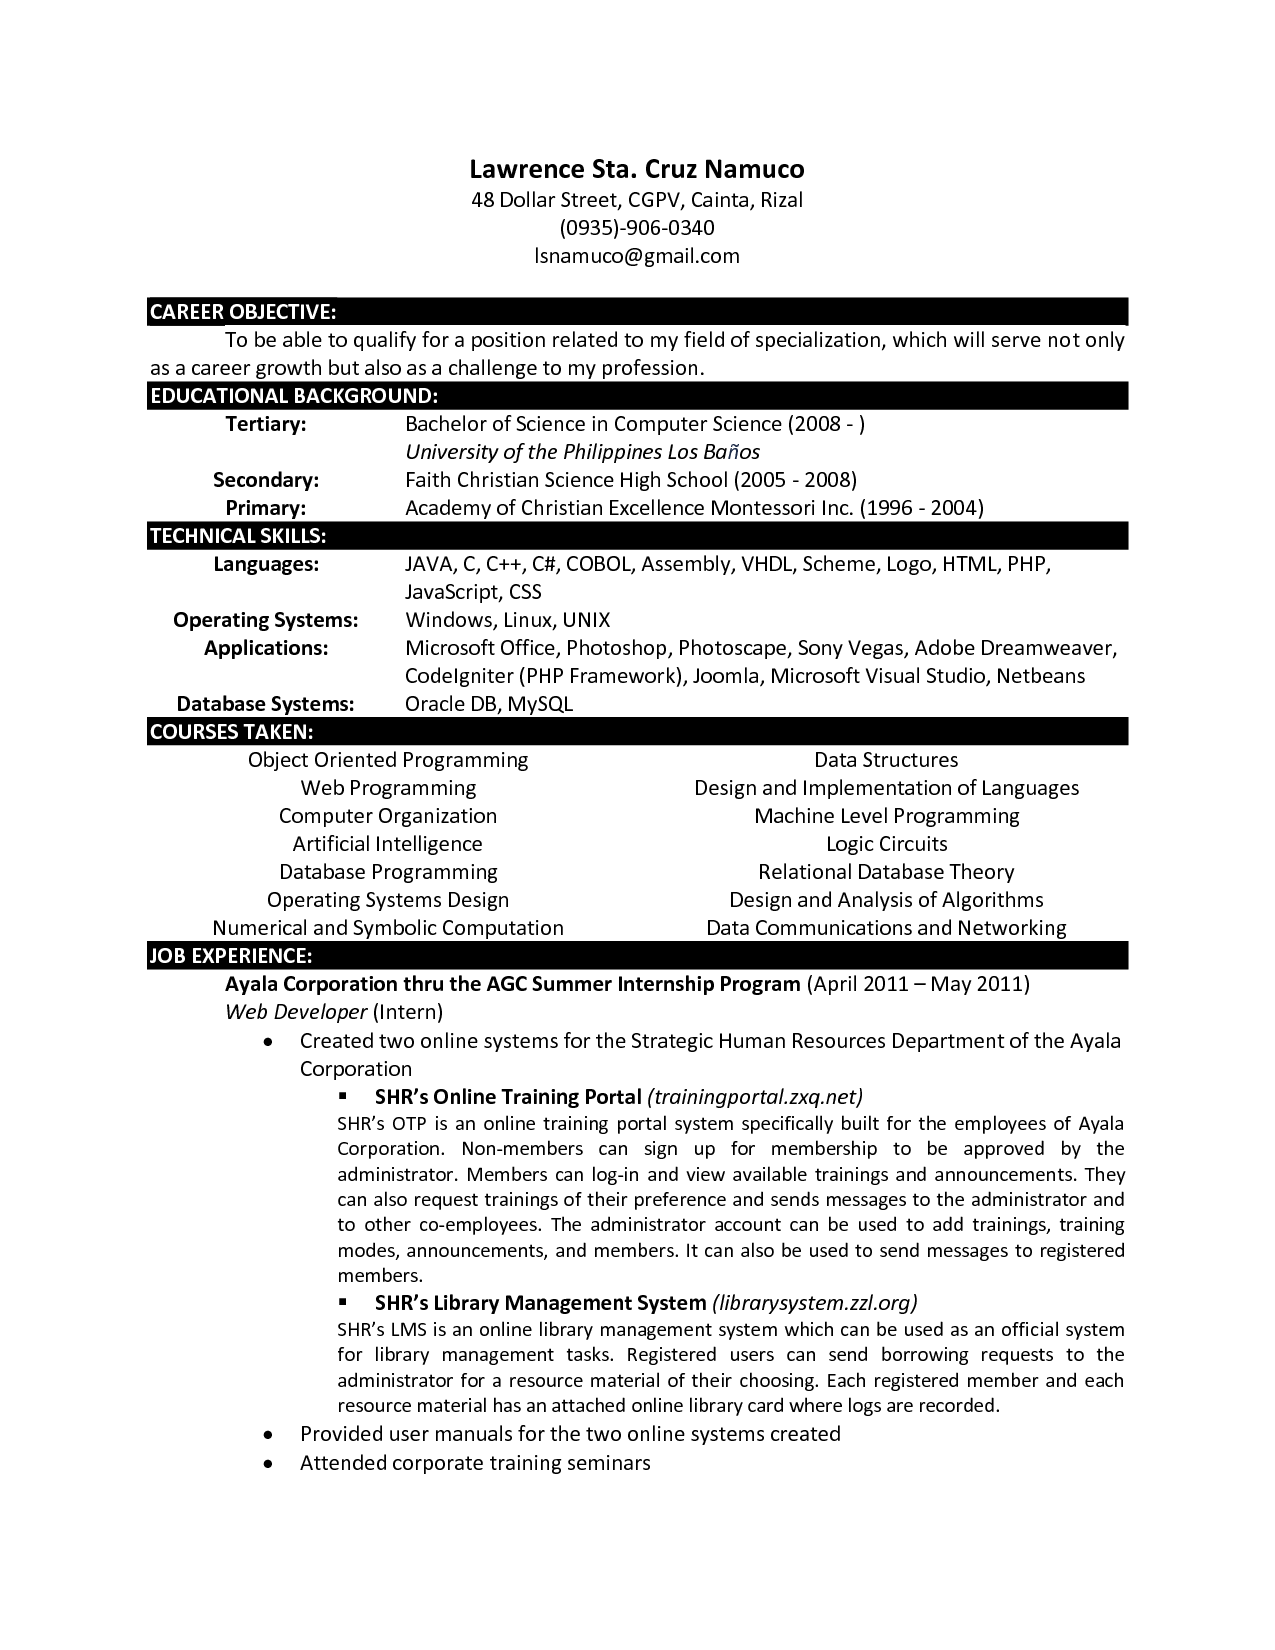 Computer Science Resume Templates Resumecareer Info